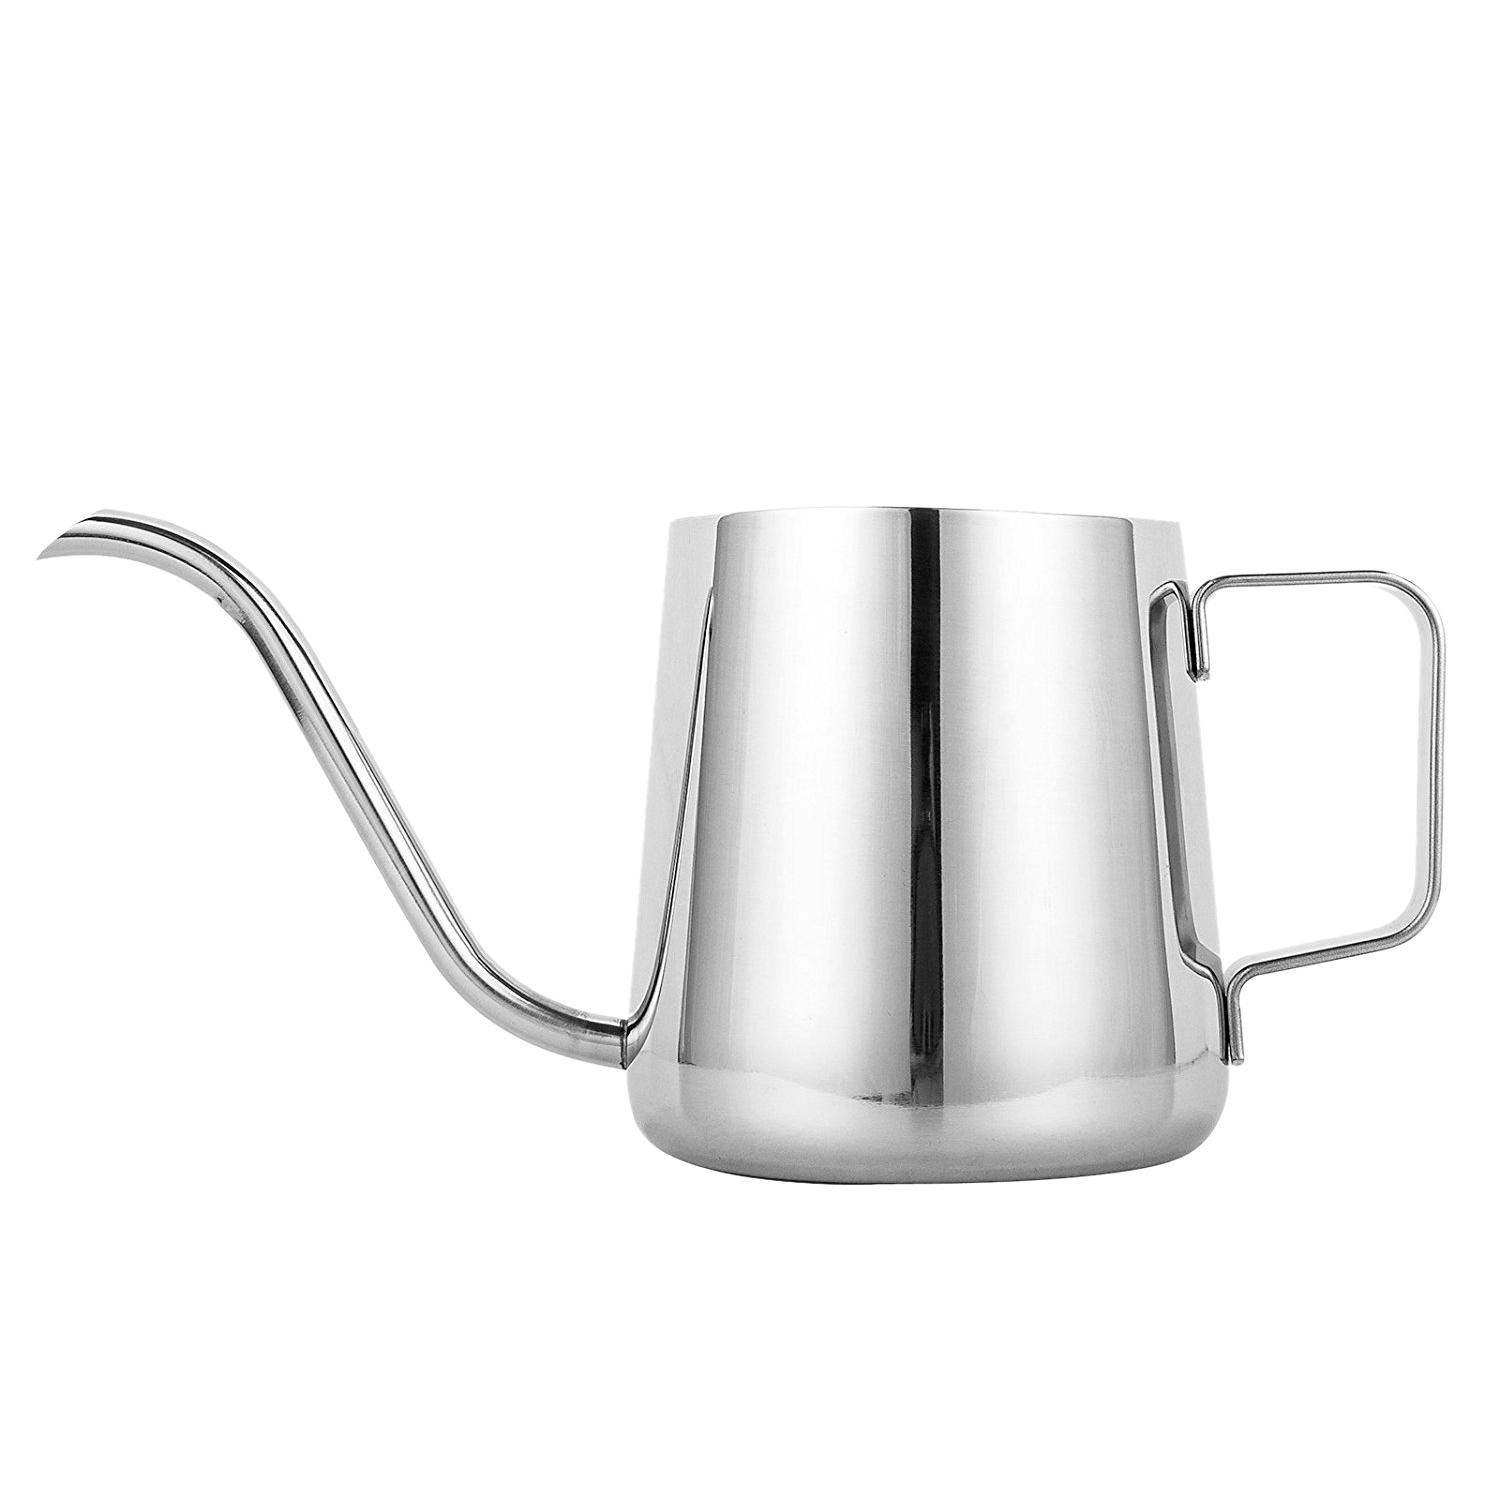 Long Narrow Spout Coffee Pot (12oz /350ML) - 304 Stainless Steel with Hanging